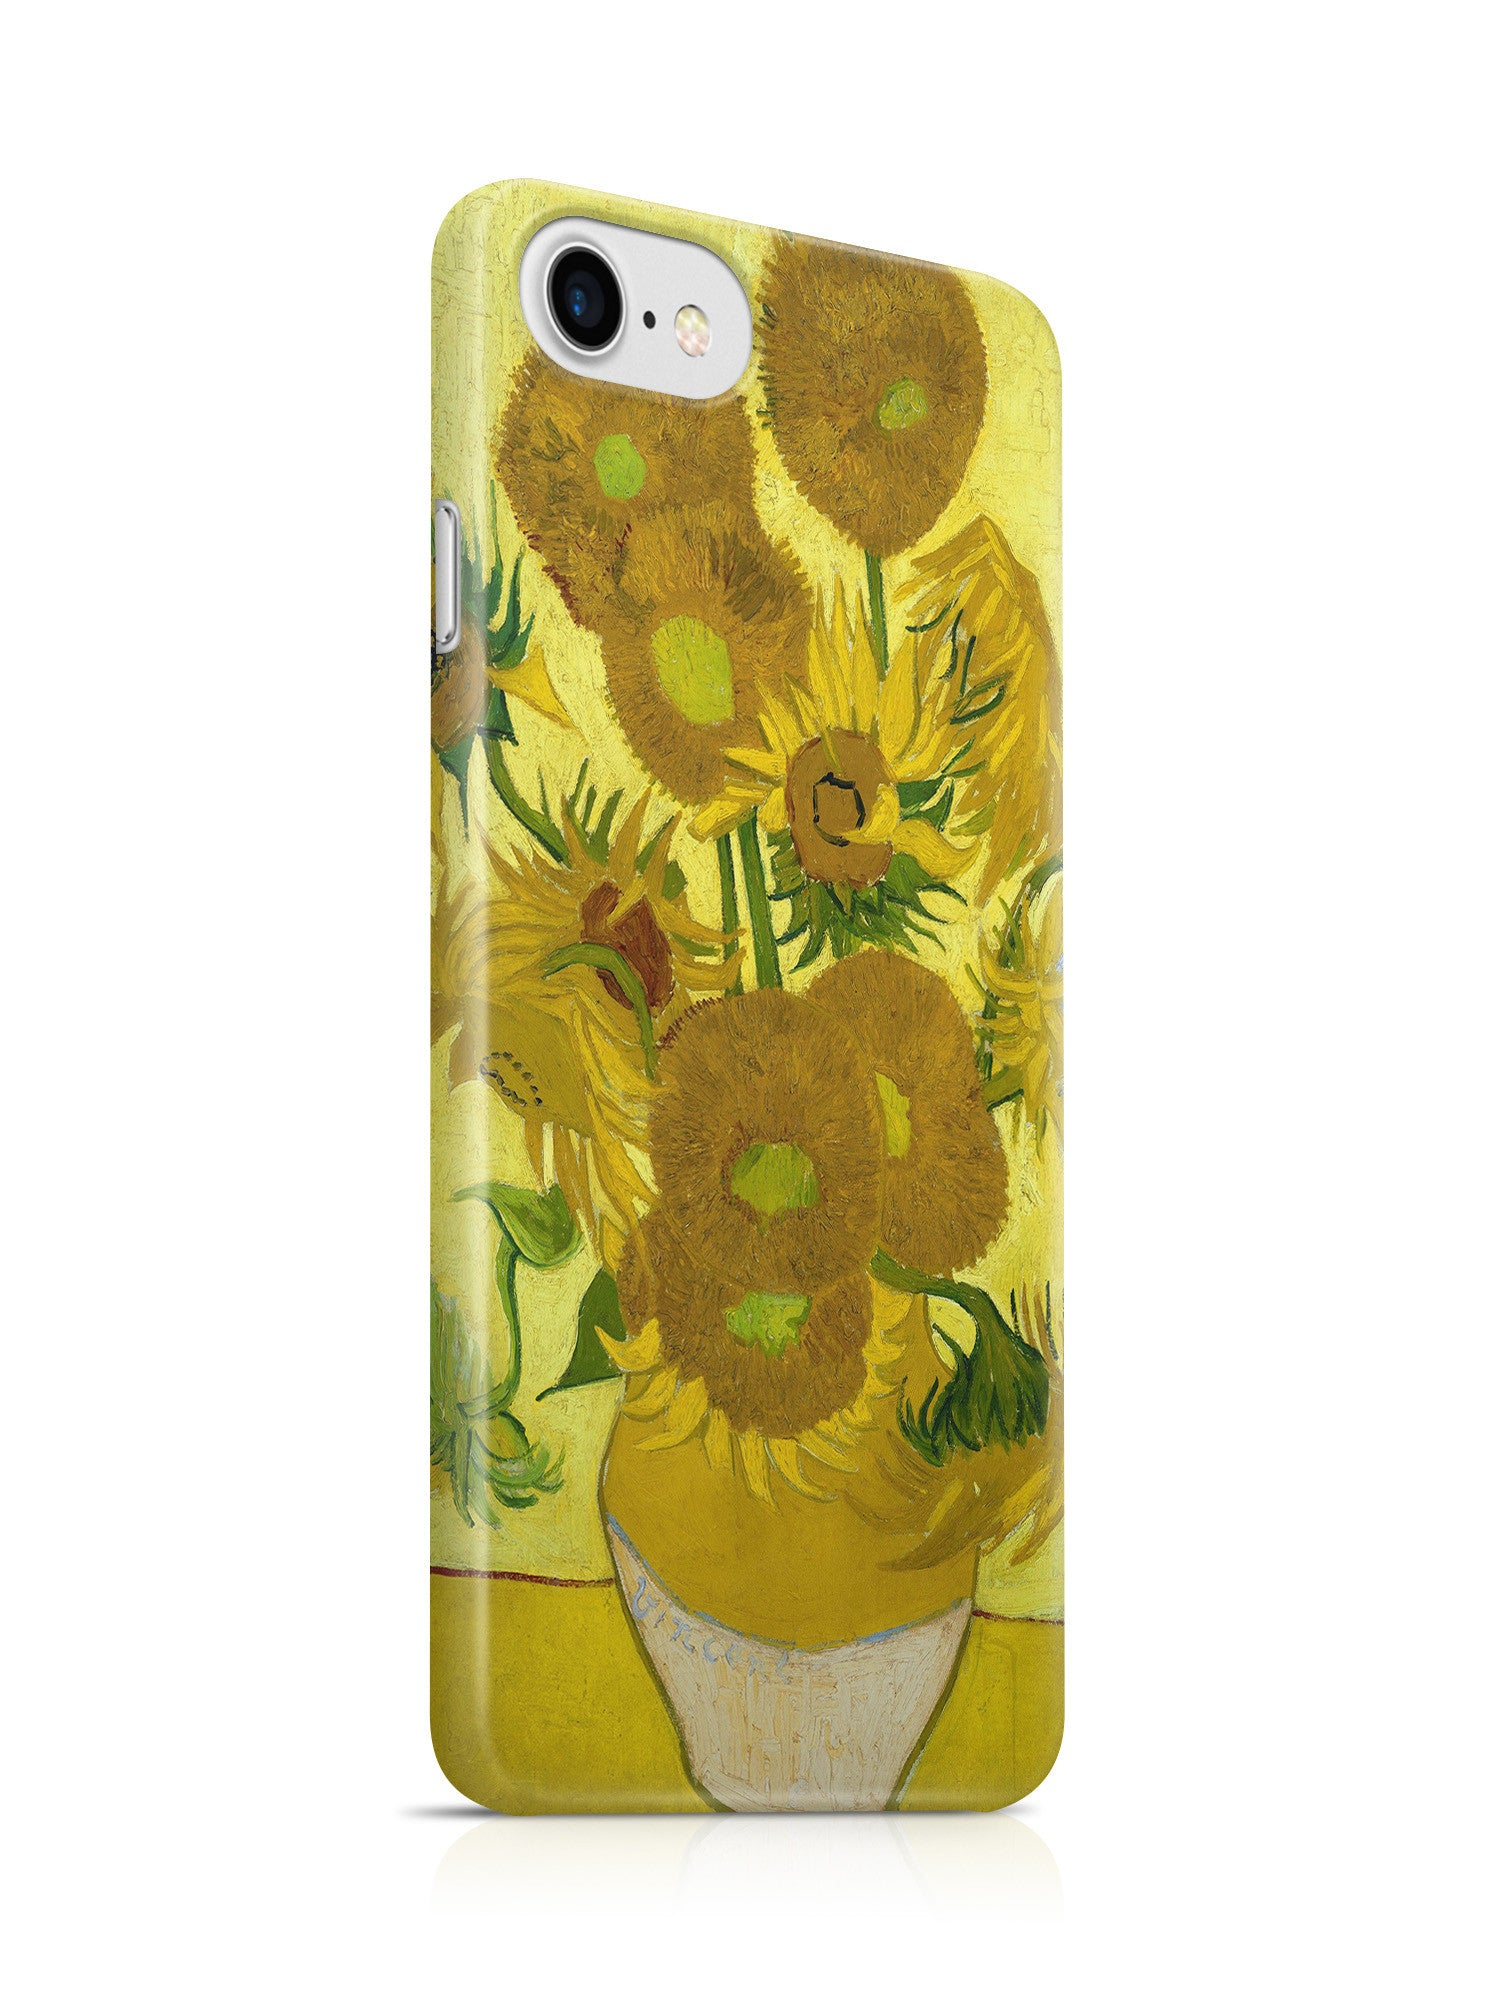 Vinteja Officially Licensed - Van Gogh - Another vase of sunflowers - Curated Case Cover For IPHONE 7